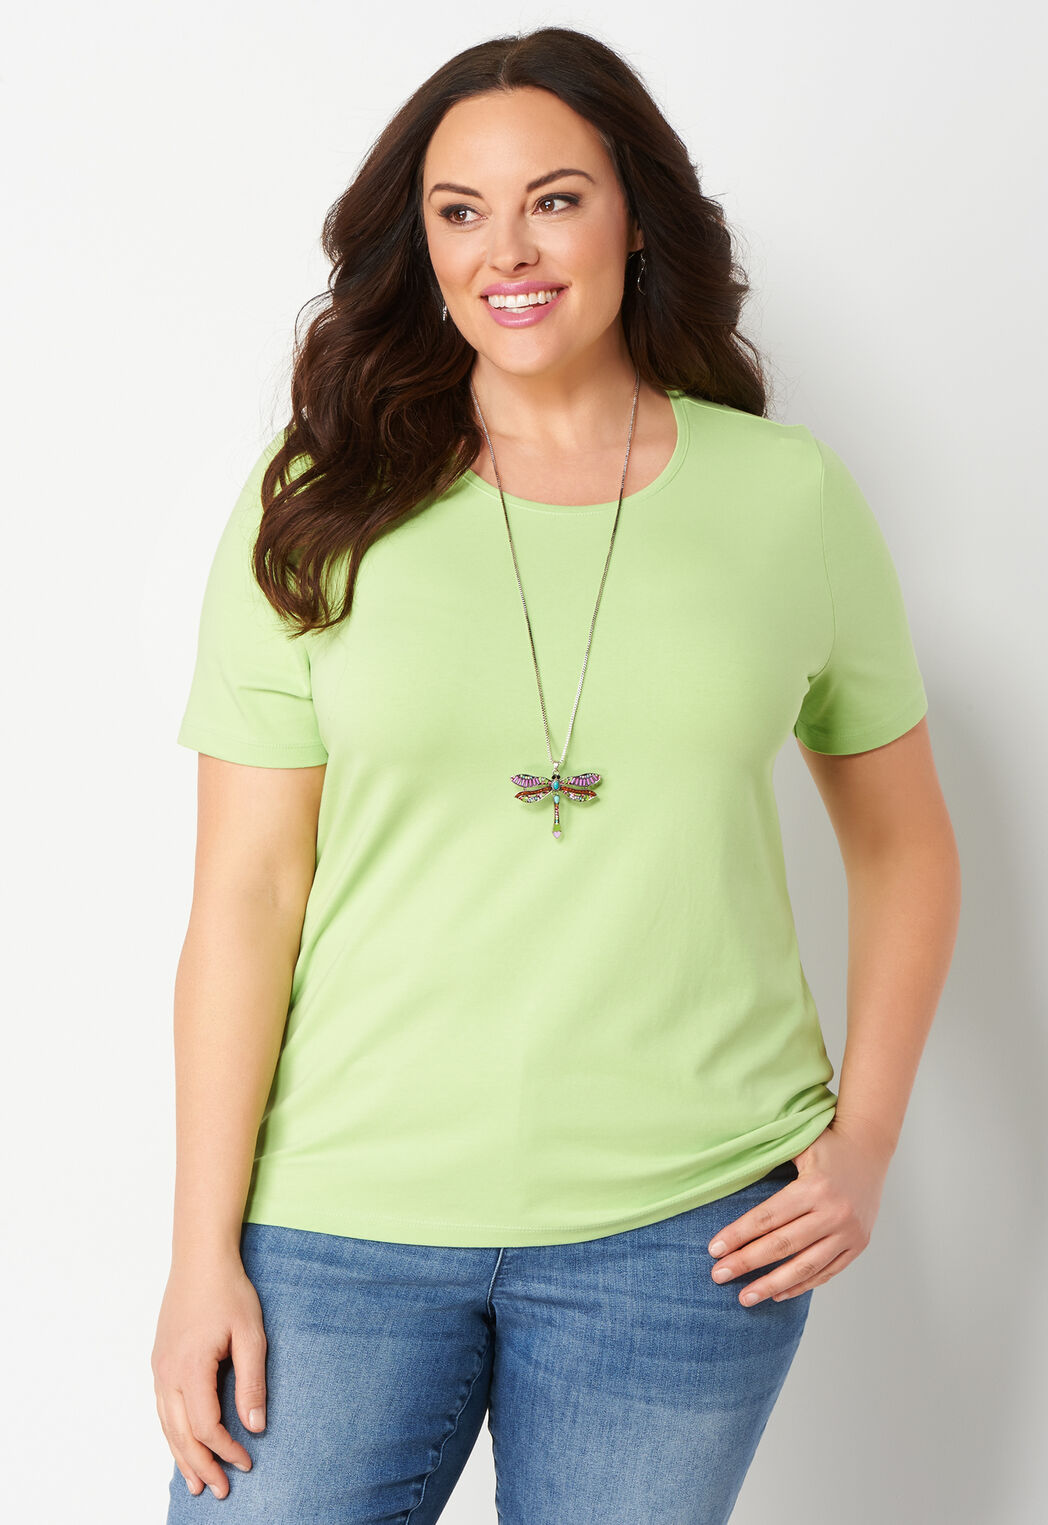 6dade8021c22f Women s Jewel Neck Essential Knit Plus Size Tee from Christopher ...